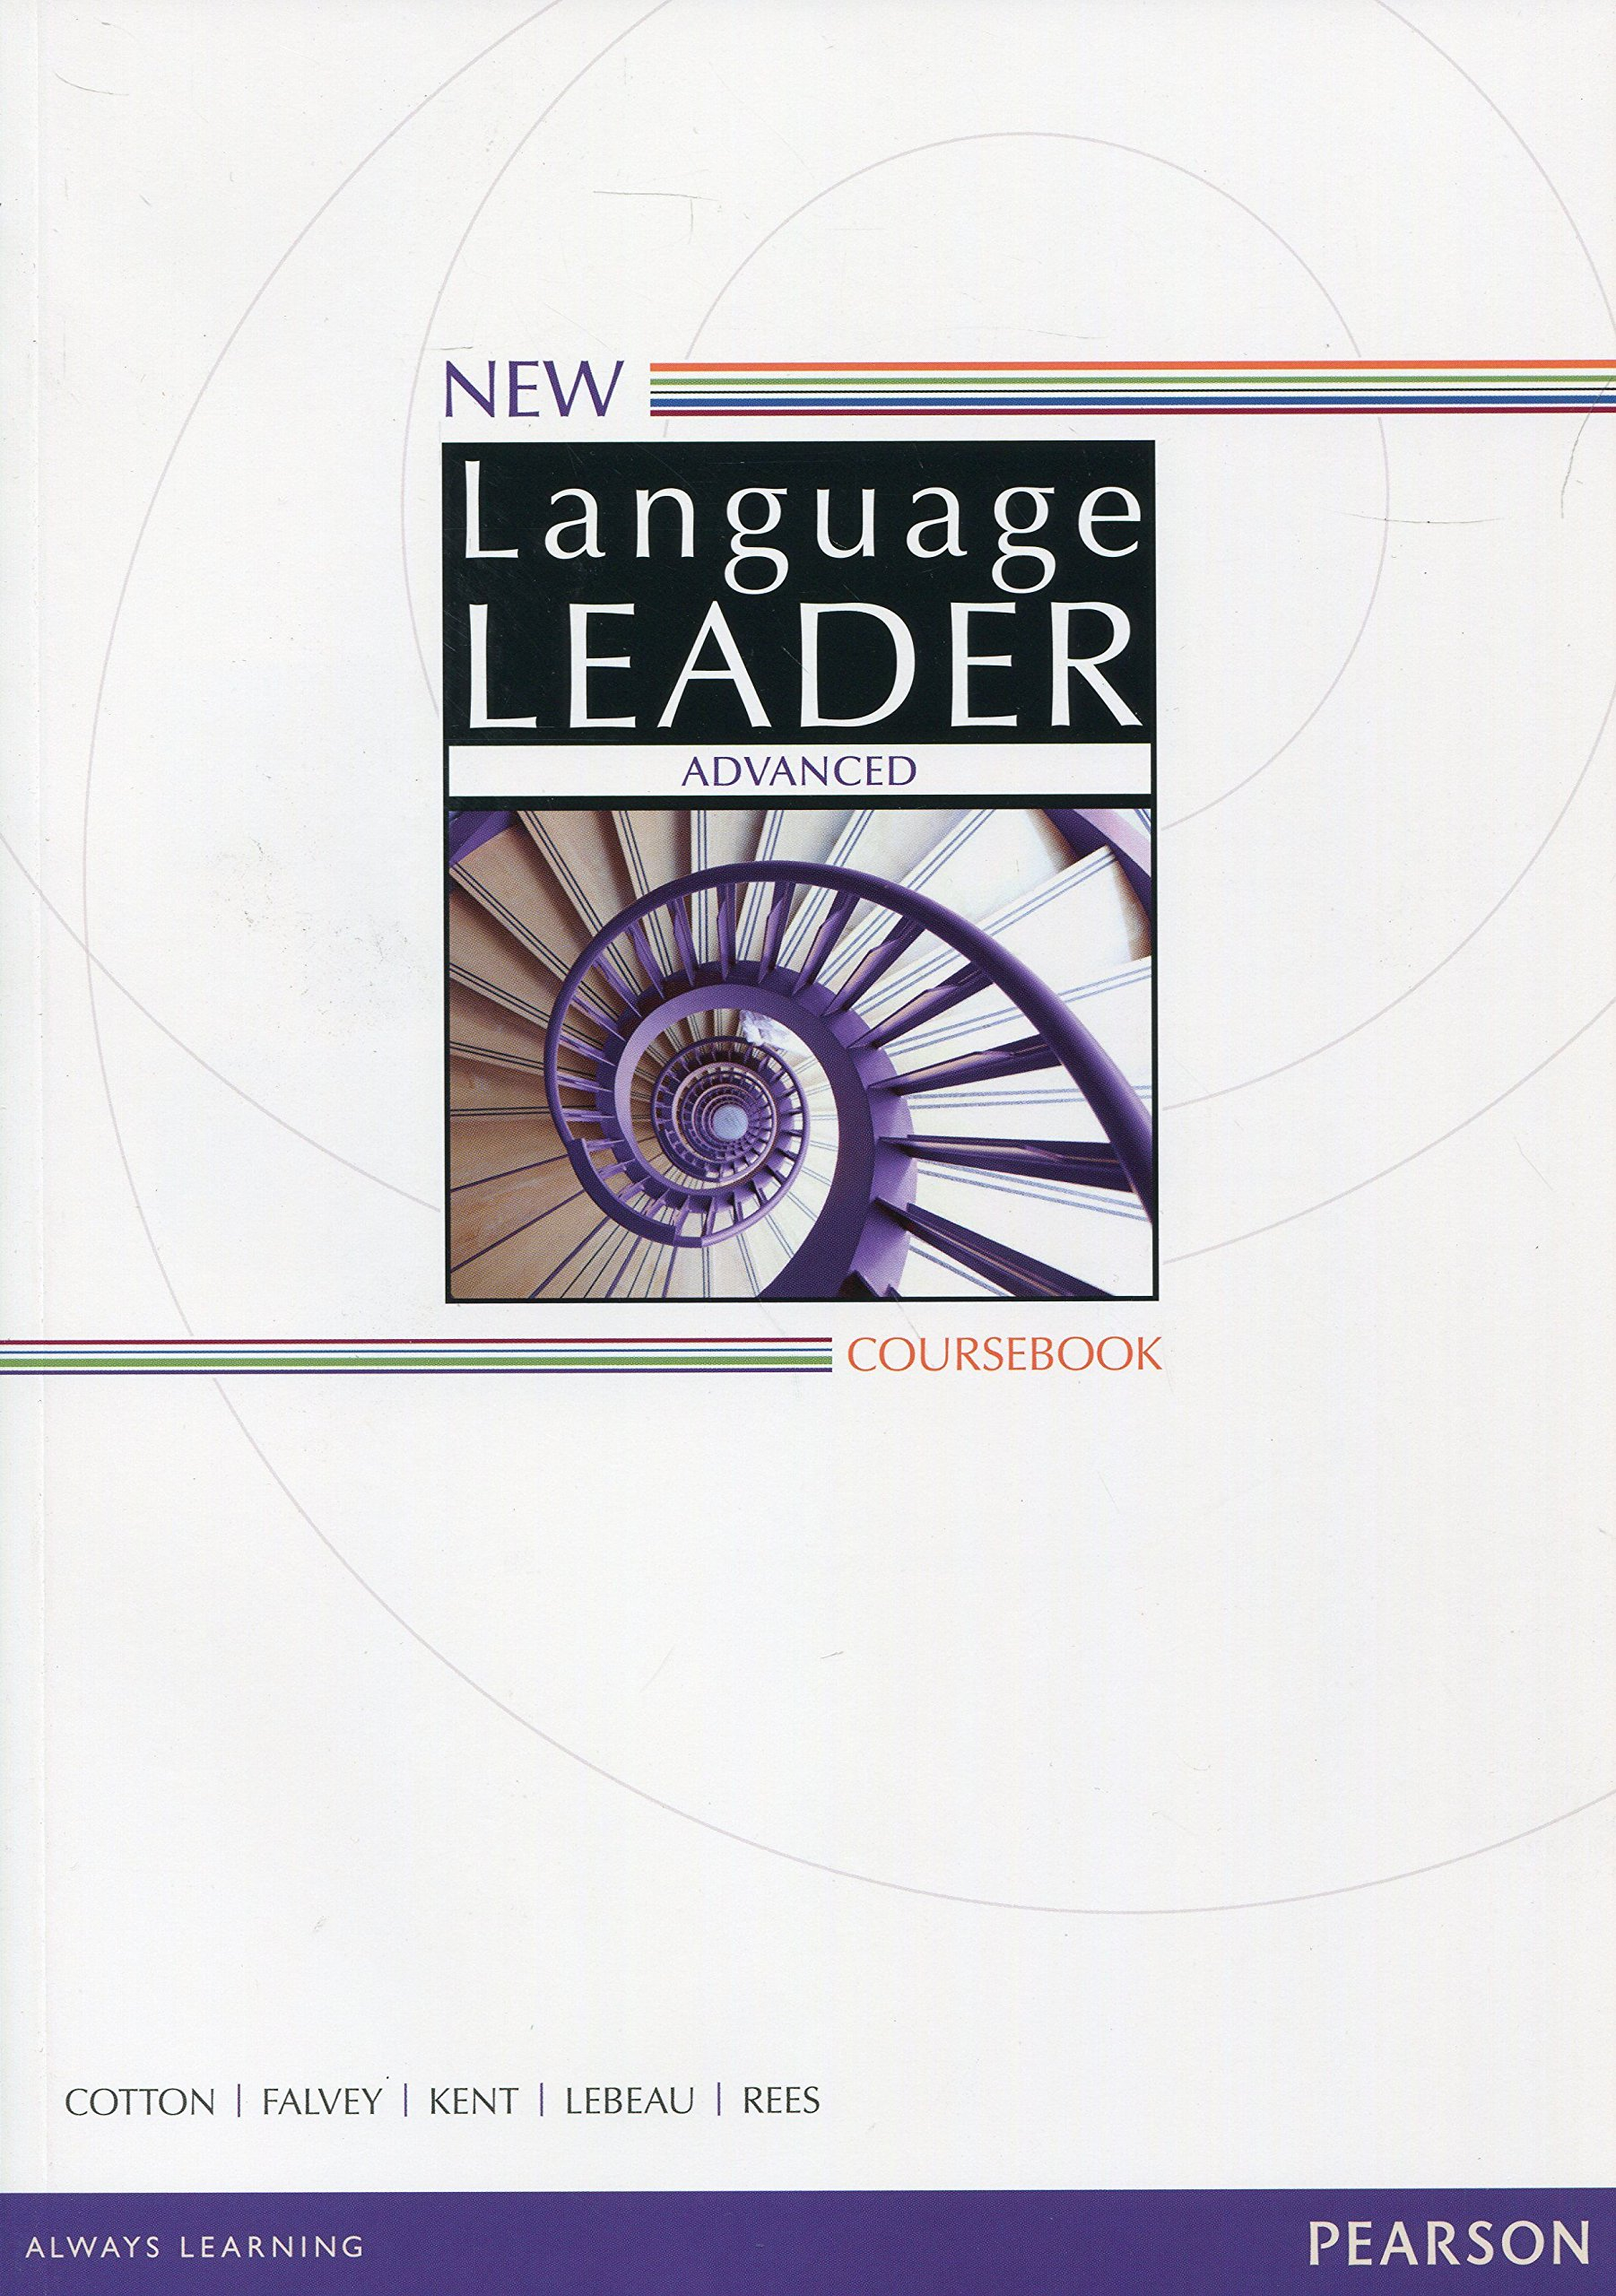 Language leader advanced скачать pdf